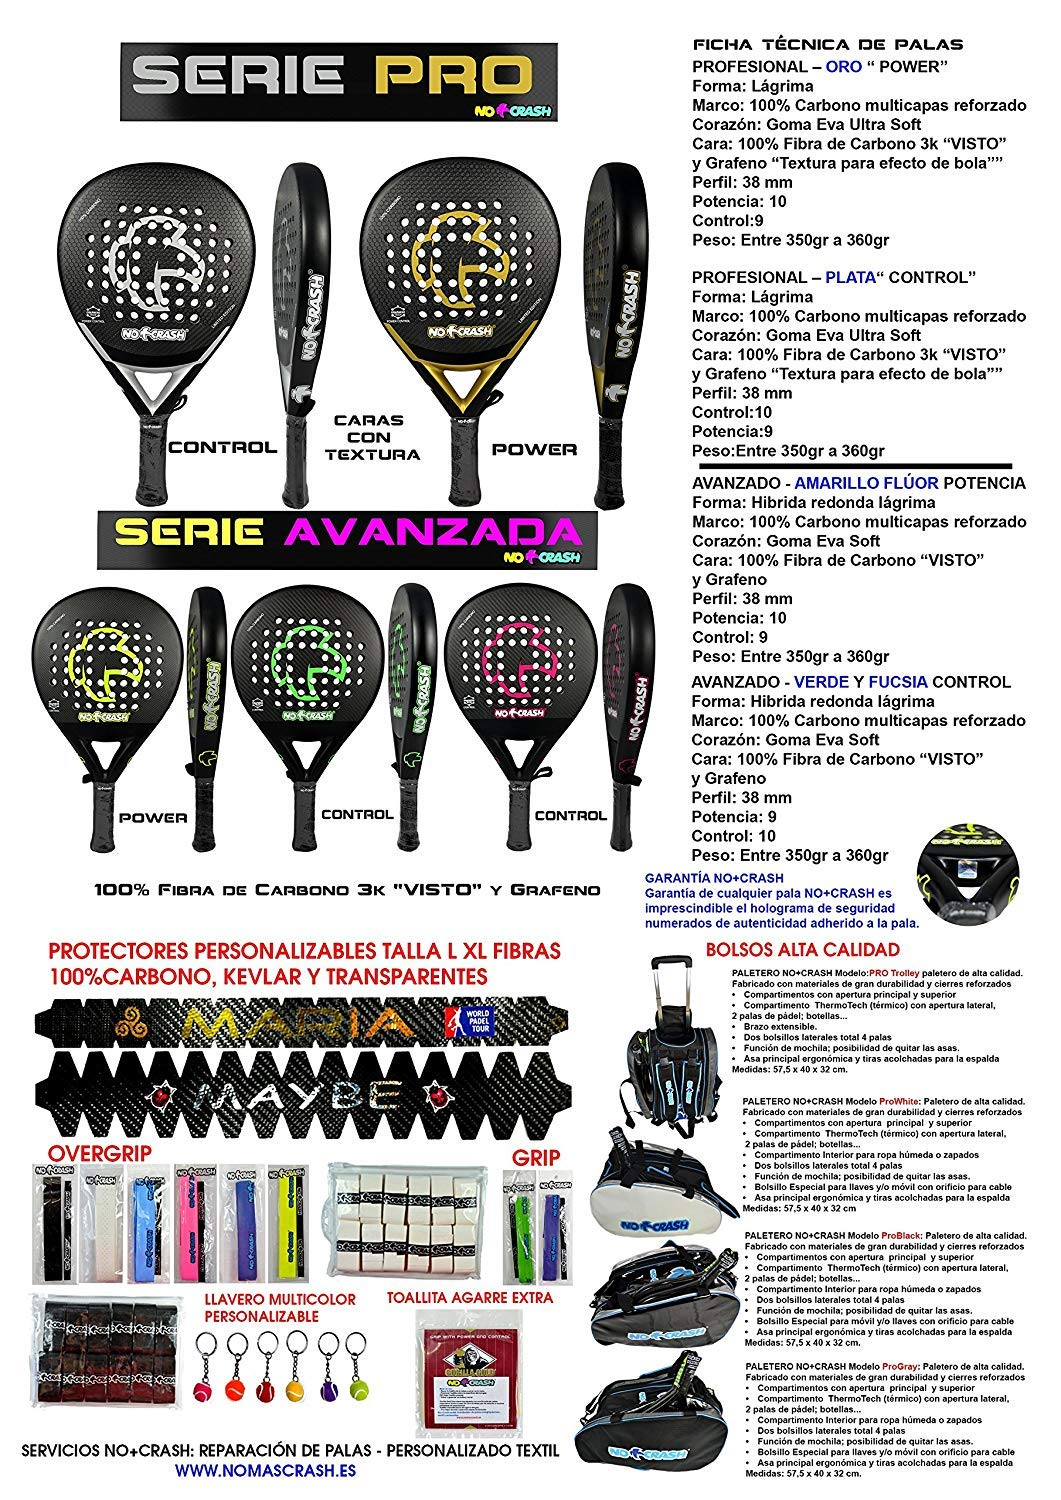 Protector Pala/Raqueta de Padel Padlle 100%Carbono Talla XL No+Crash® nomascrash No+Crash